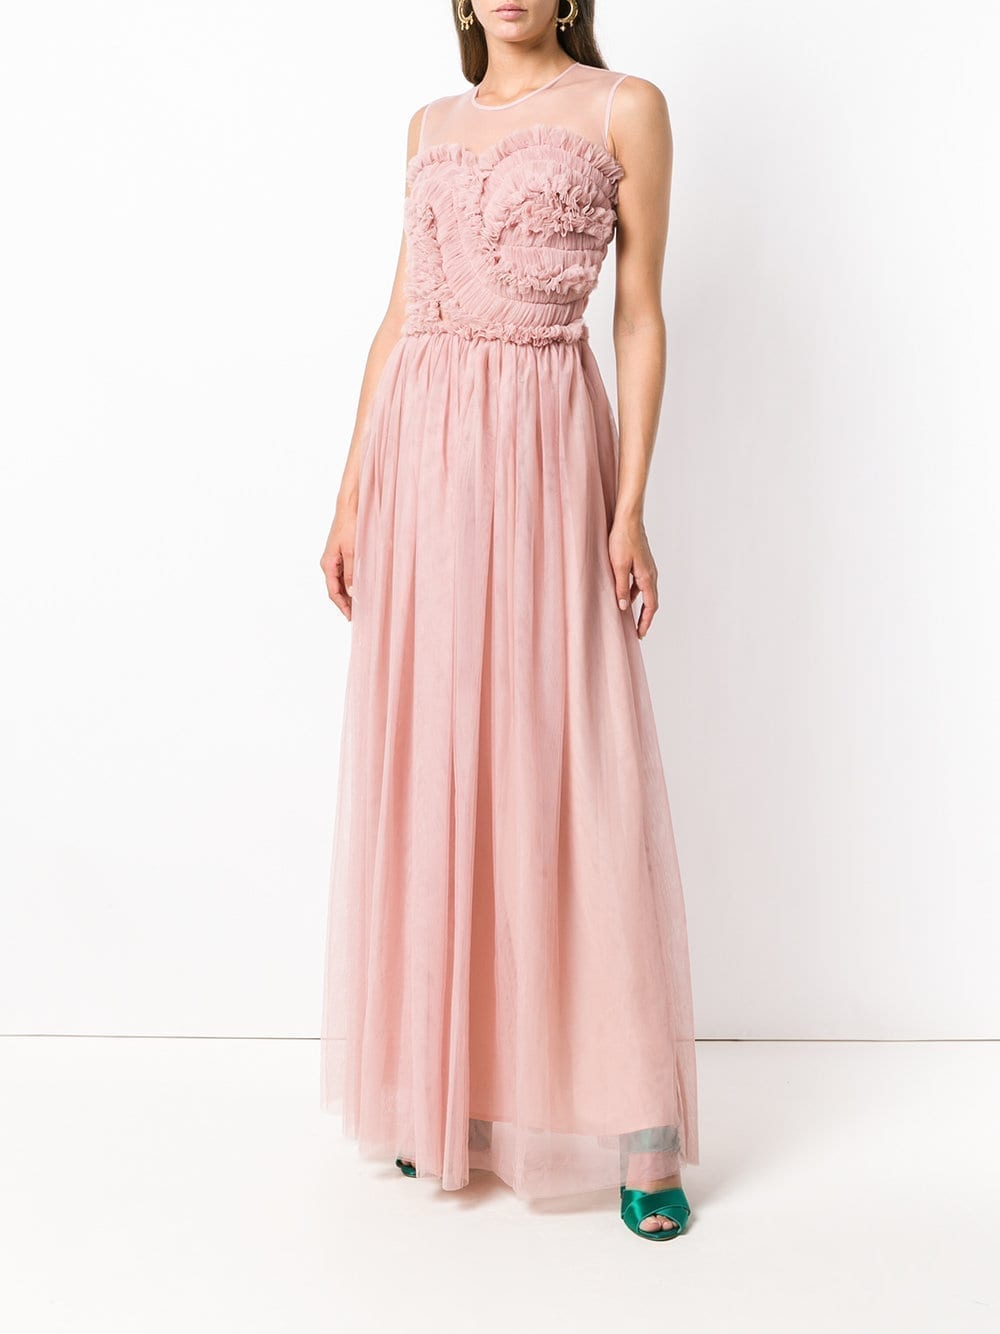 P.A.R.O.S.H. Frilled Bustier Light Pink Gown - We Select Dresses